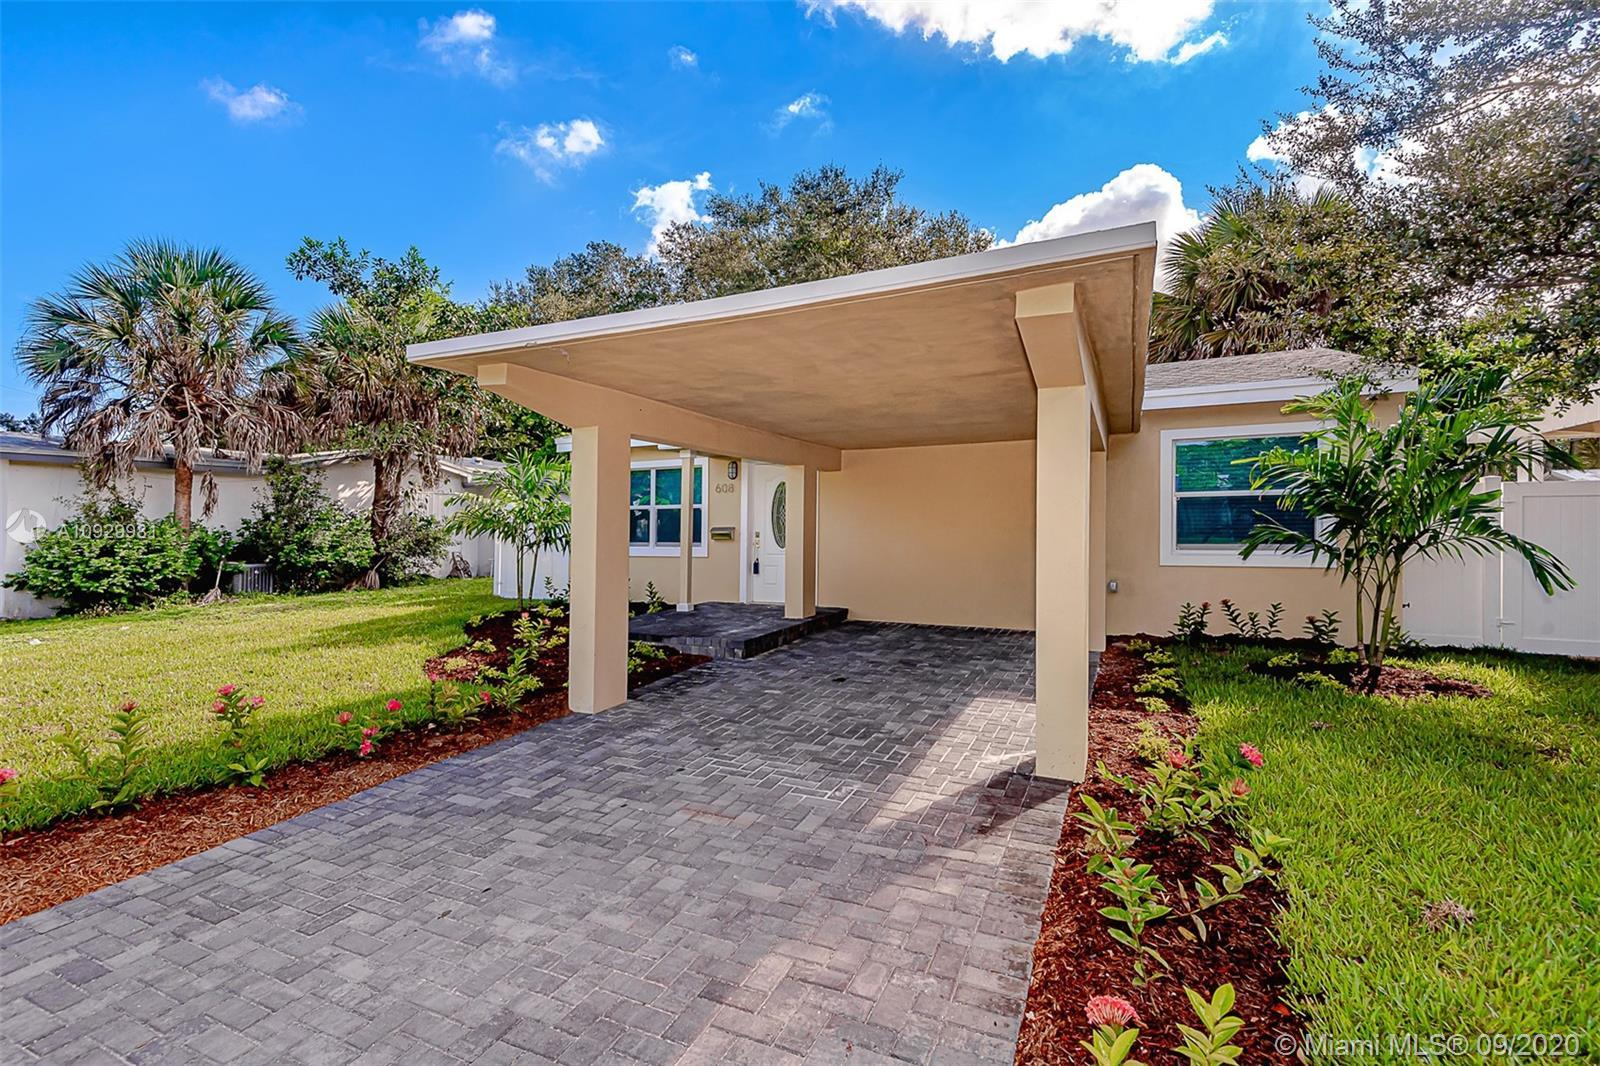 Beautiful 3 bedroom/3 full bathroom home in the Riverside subdivision of Fort Lauderdale! Two of the